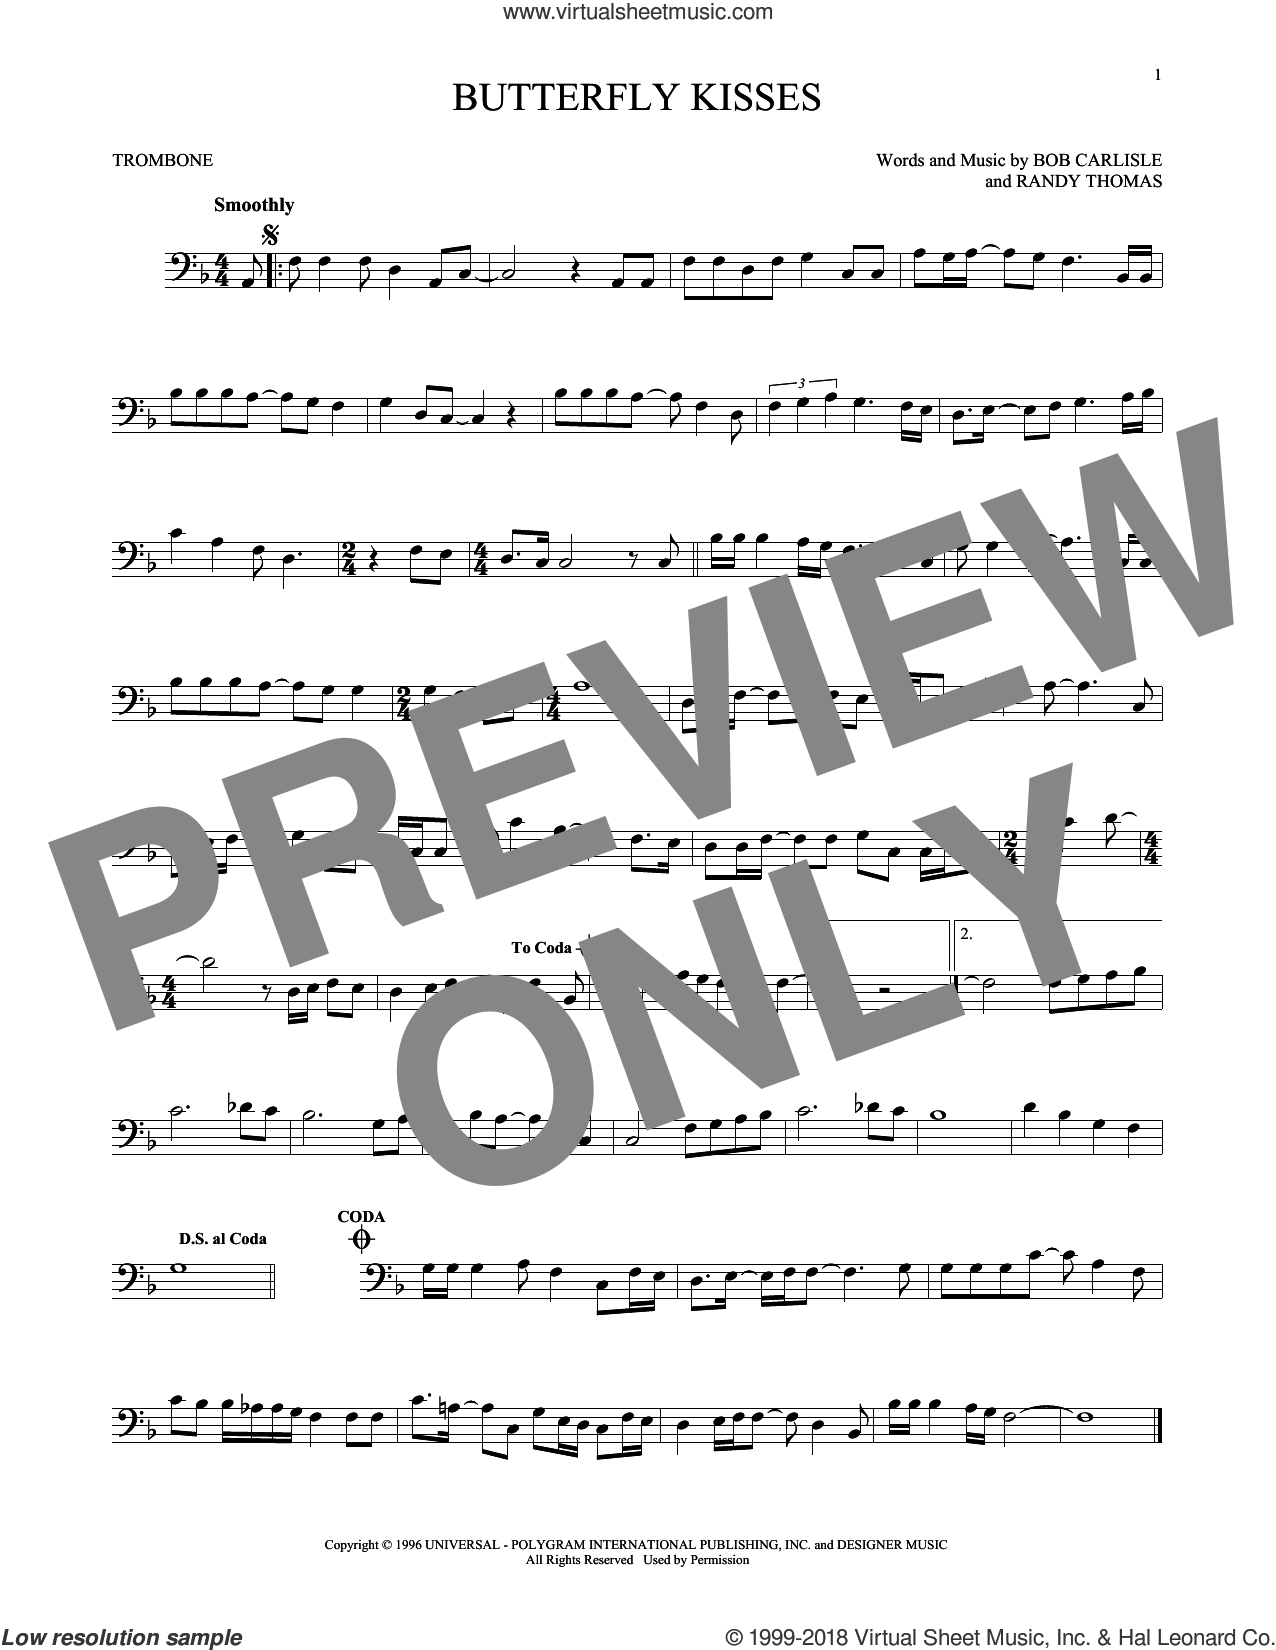 Butterfly Kisses sheet music for trombone solo by Bob Carlisle, Jeff Carson and Randy Thomas, wedding score, intermediate skill level